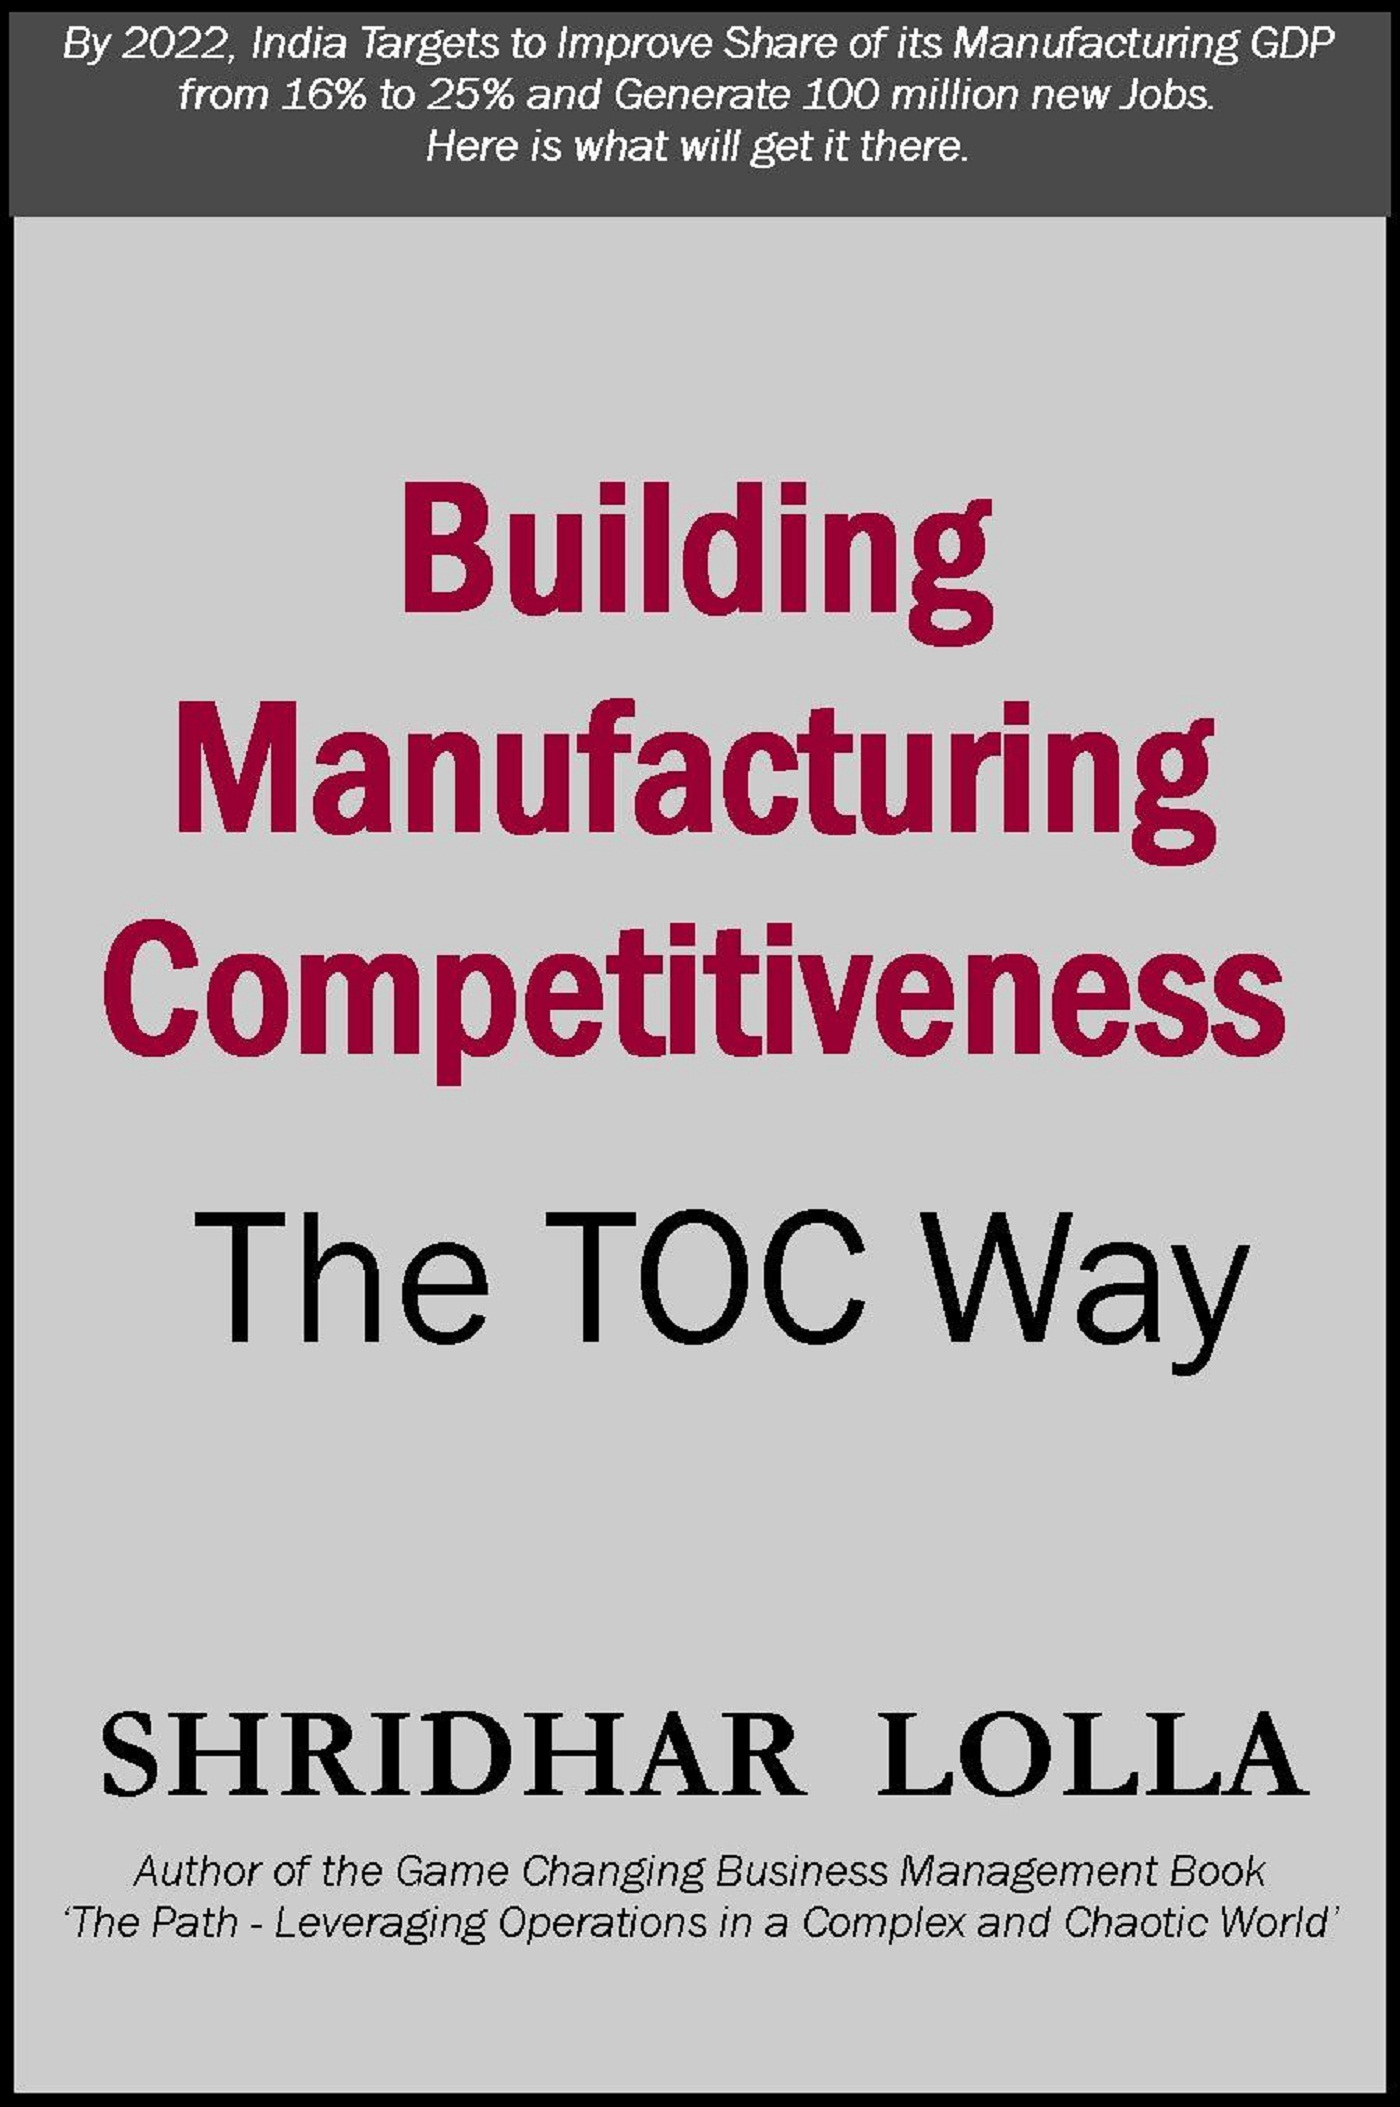 Building Manufacturing Competitiveness: The TOC Way